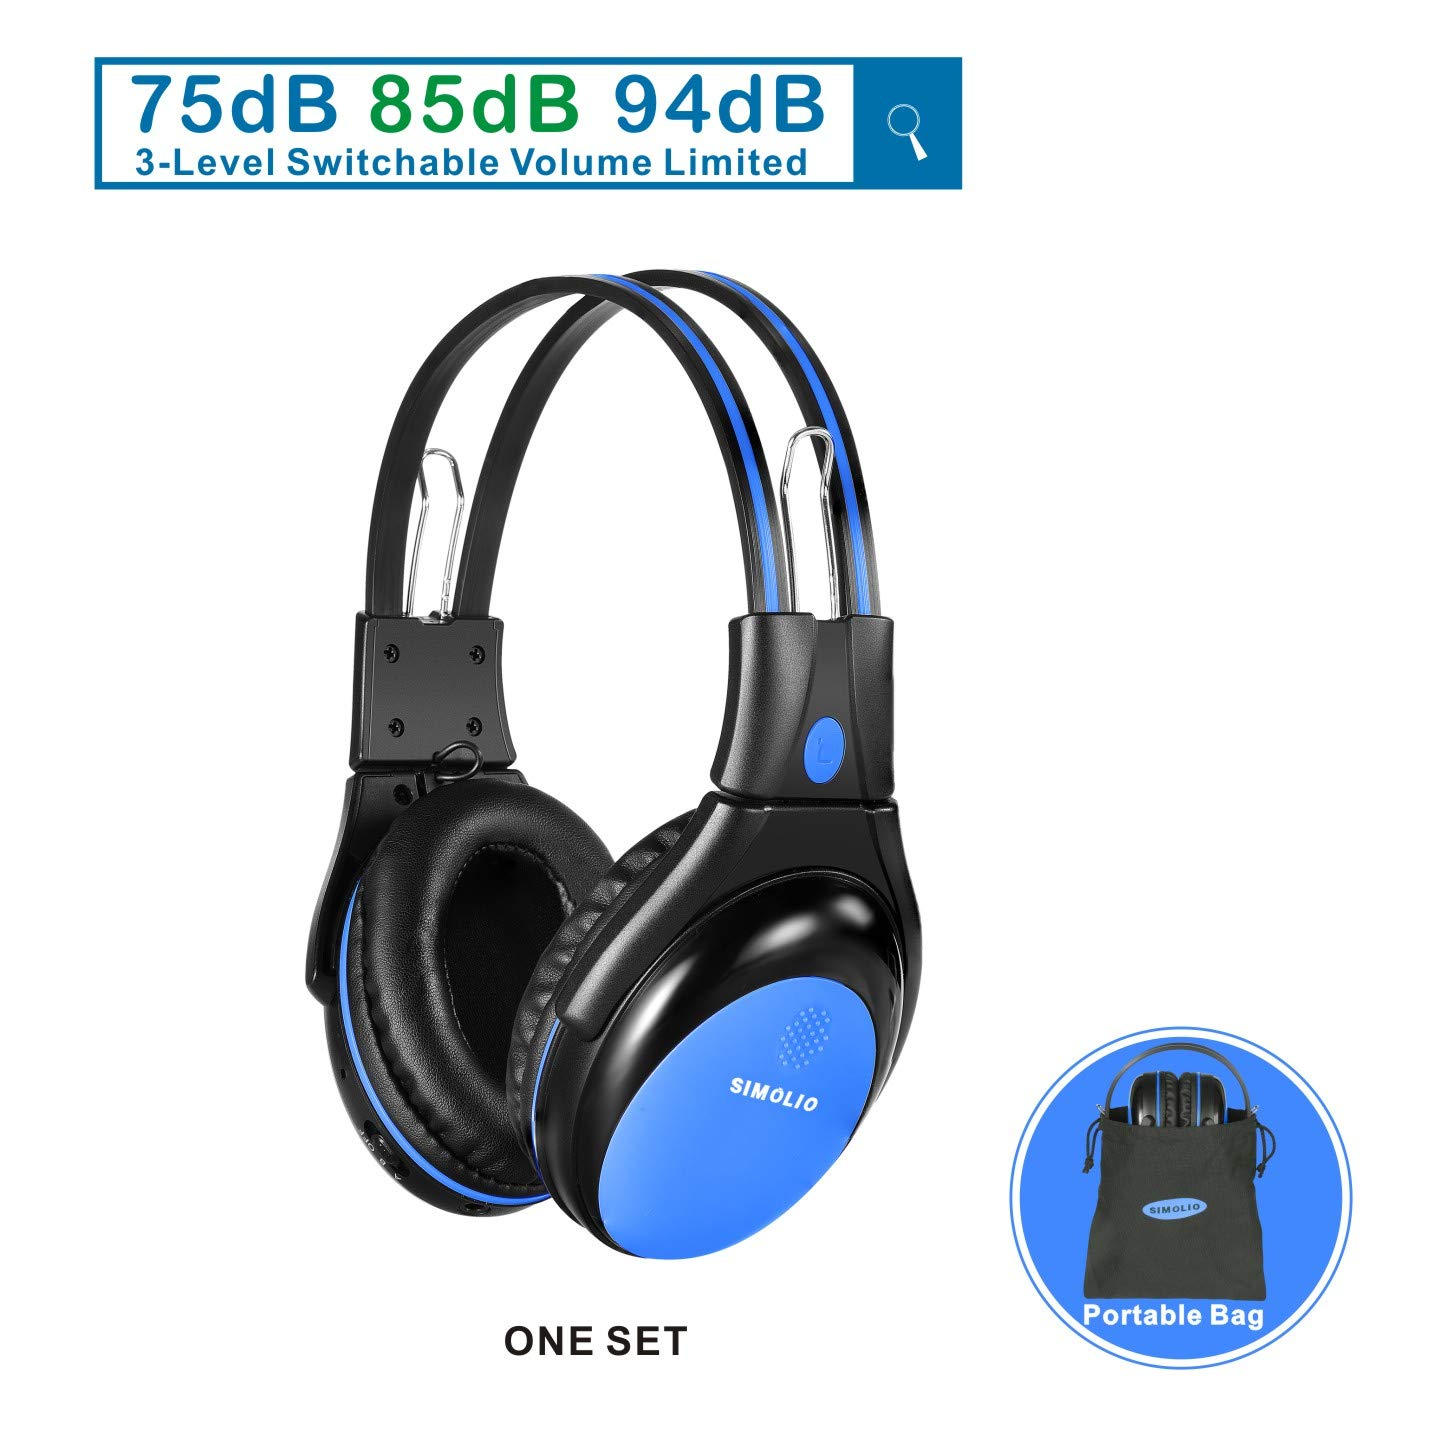 1 Pack of Wireless Kids Headphones with 3 Levels Volume Limiting, in Car IR Headphones with Sharing Jack, IR Wireless Headsets for Car DVD/TV, 2 Channel Foldable Car DVD Headphones, Blue by SIMOLIO